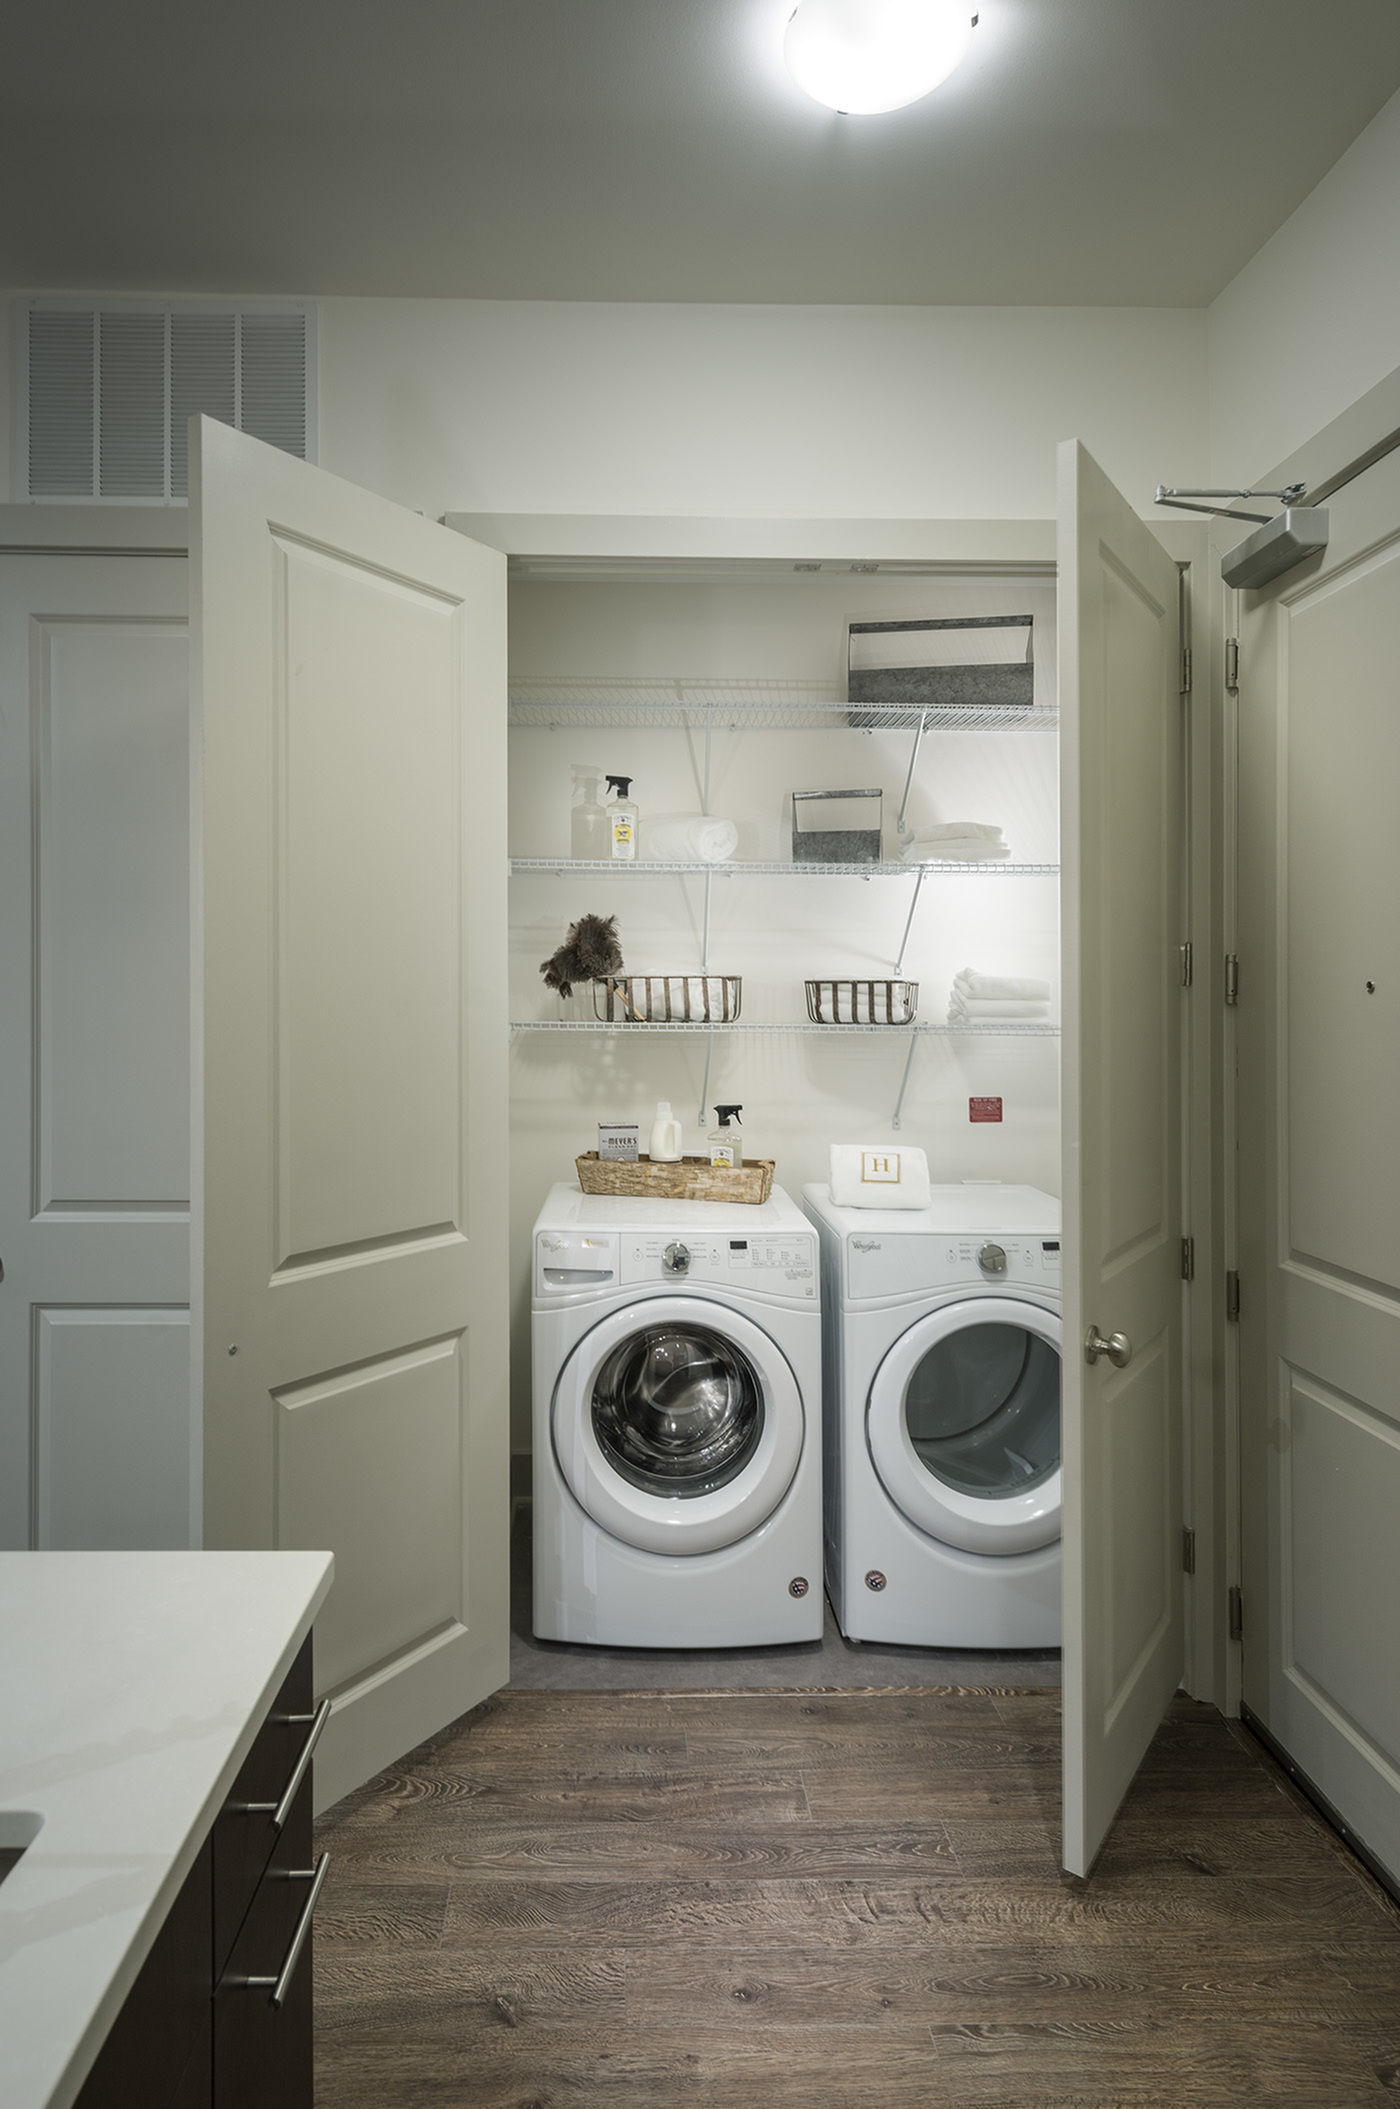 Image of Full-size high-efficiency washer and dryers for Hanover West Peachtree